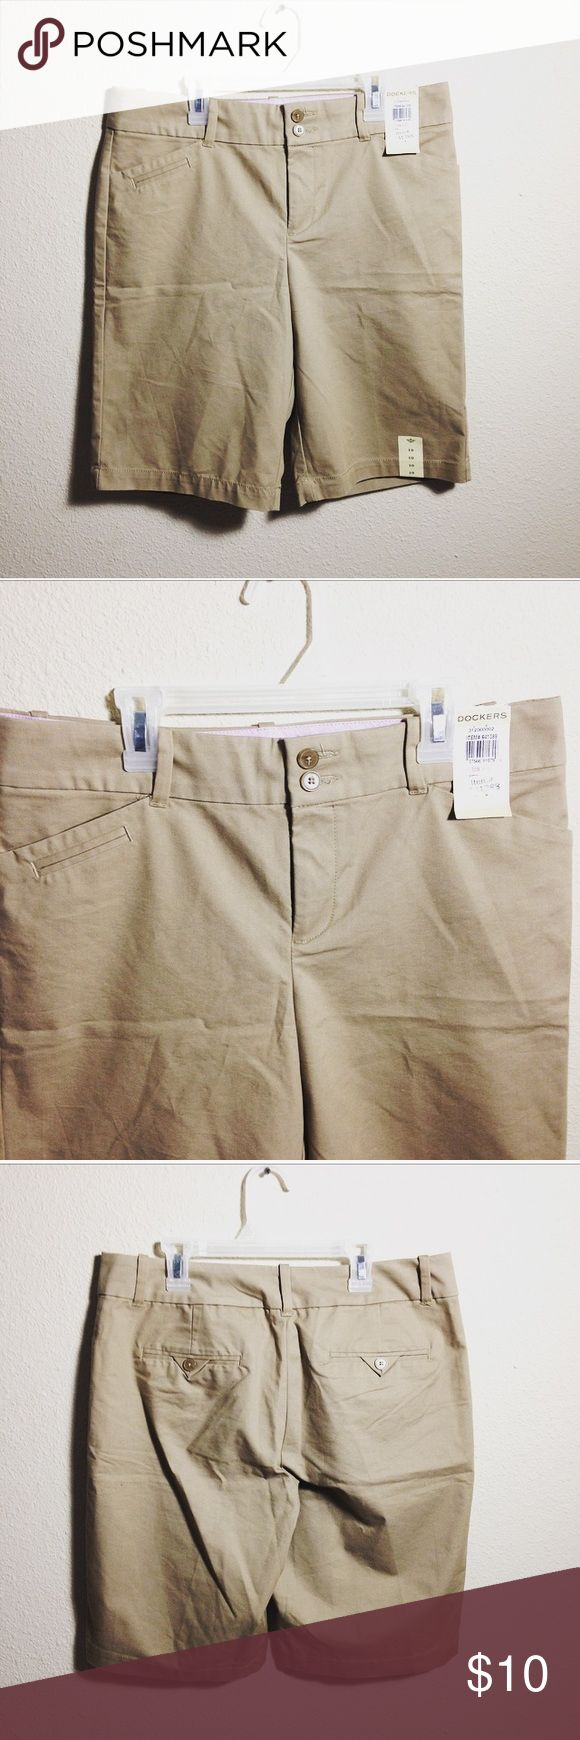 🍄 Women's Docker khaki shorts Women's khaki longer style shorts, size 10 NWT. Dockers Shorts